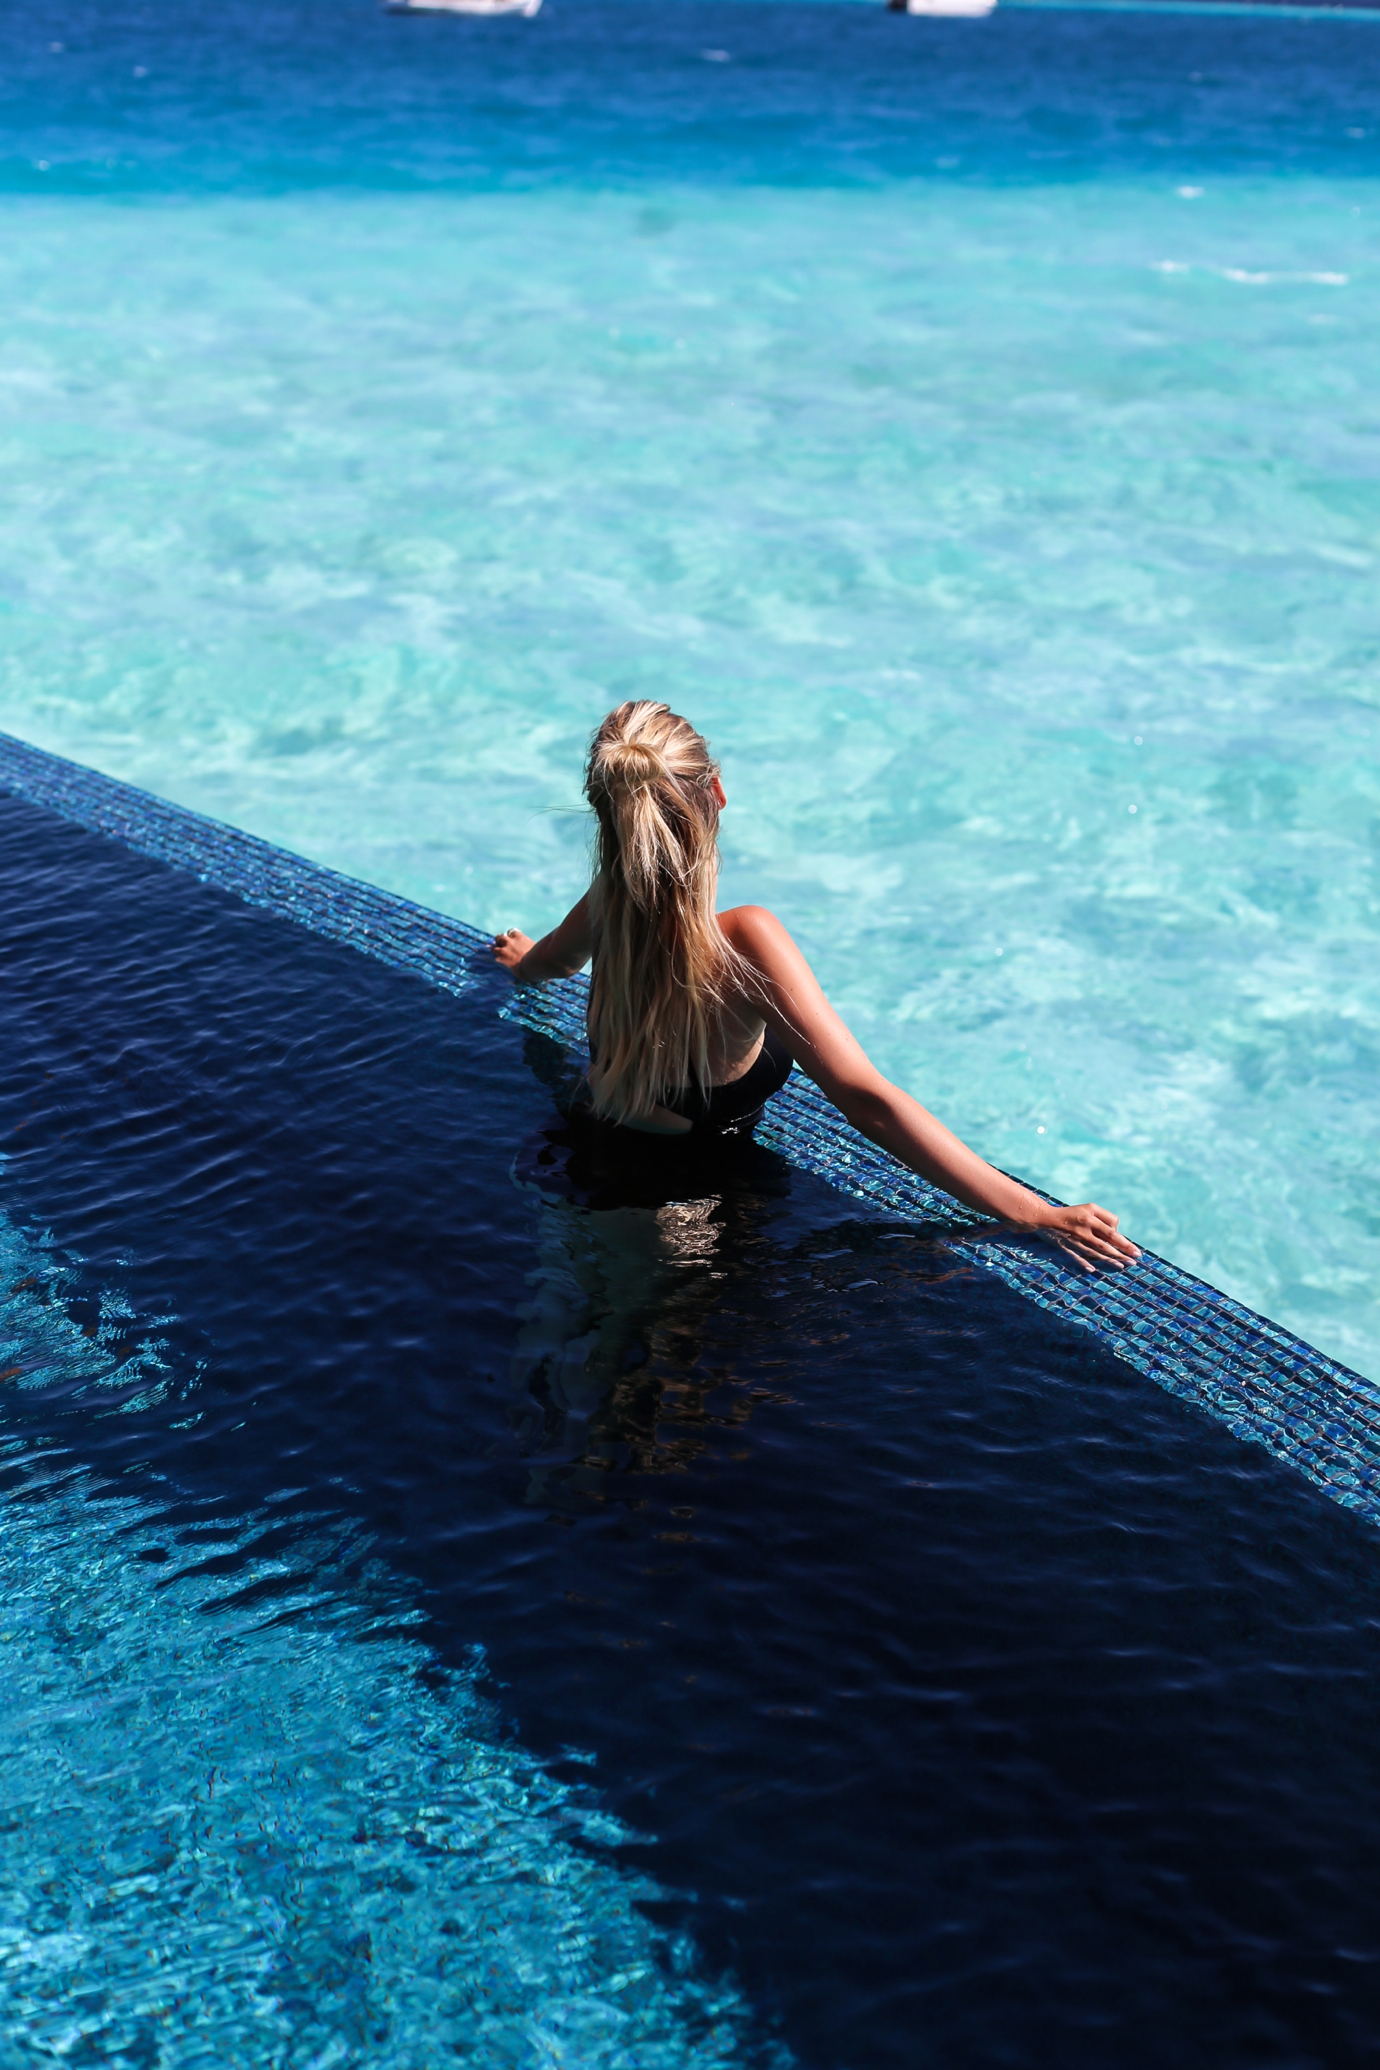 Maldives_MS_ohhcouture_pool8